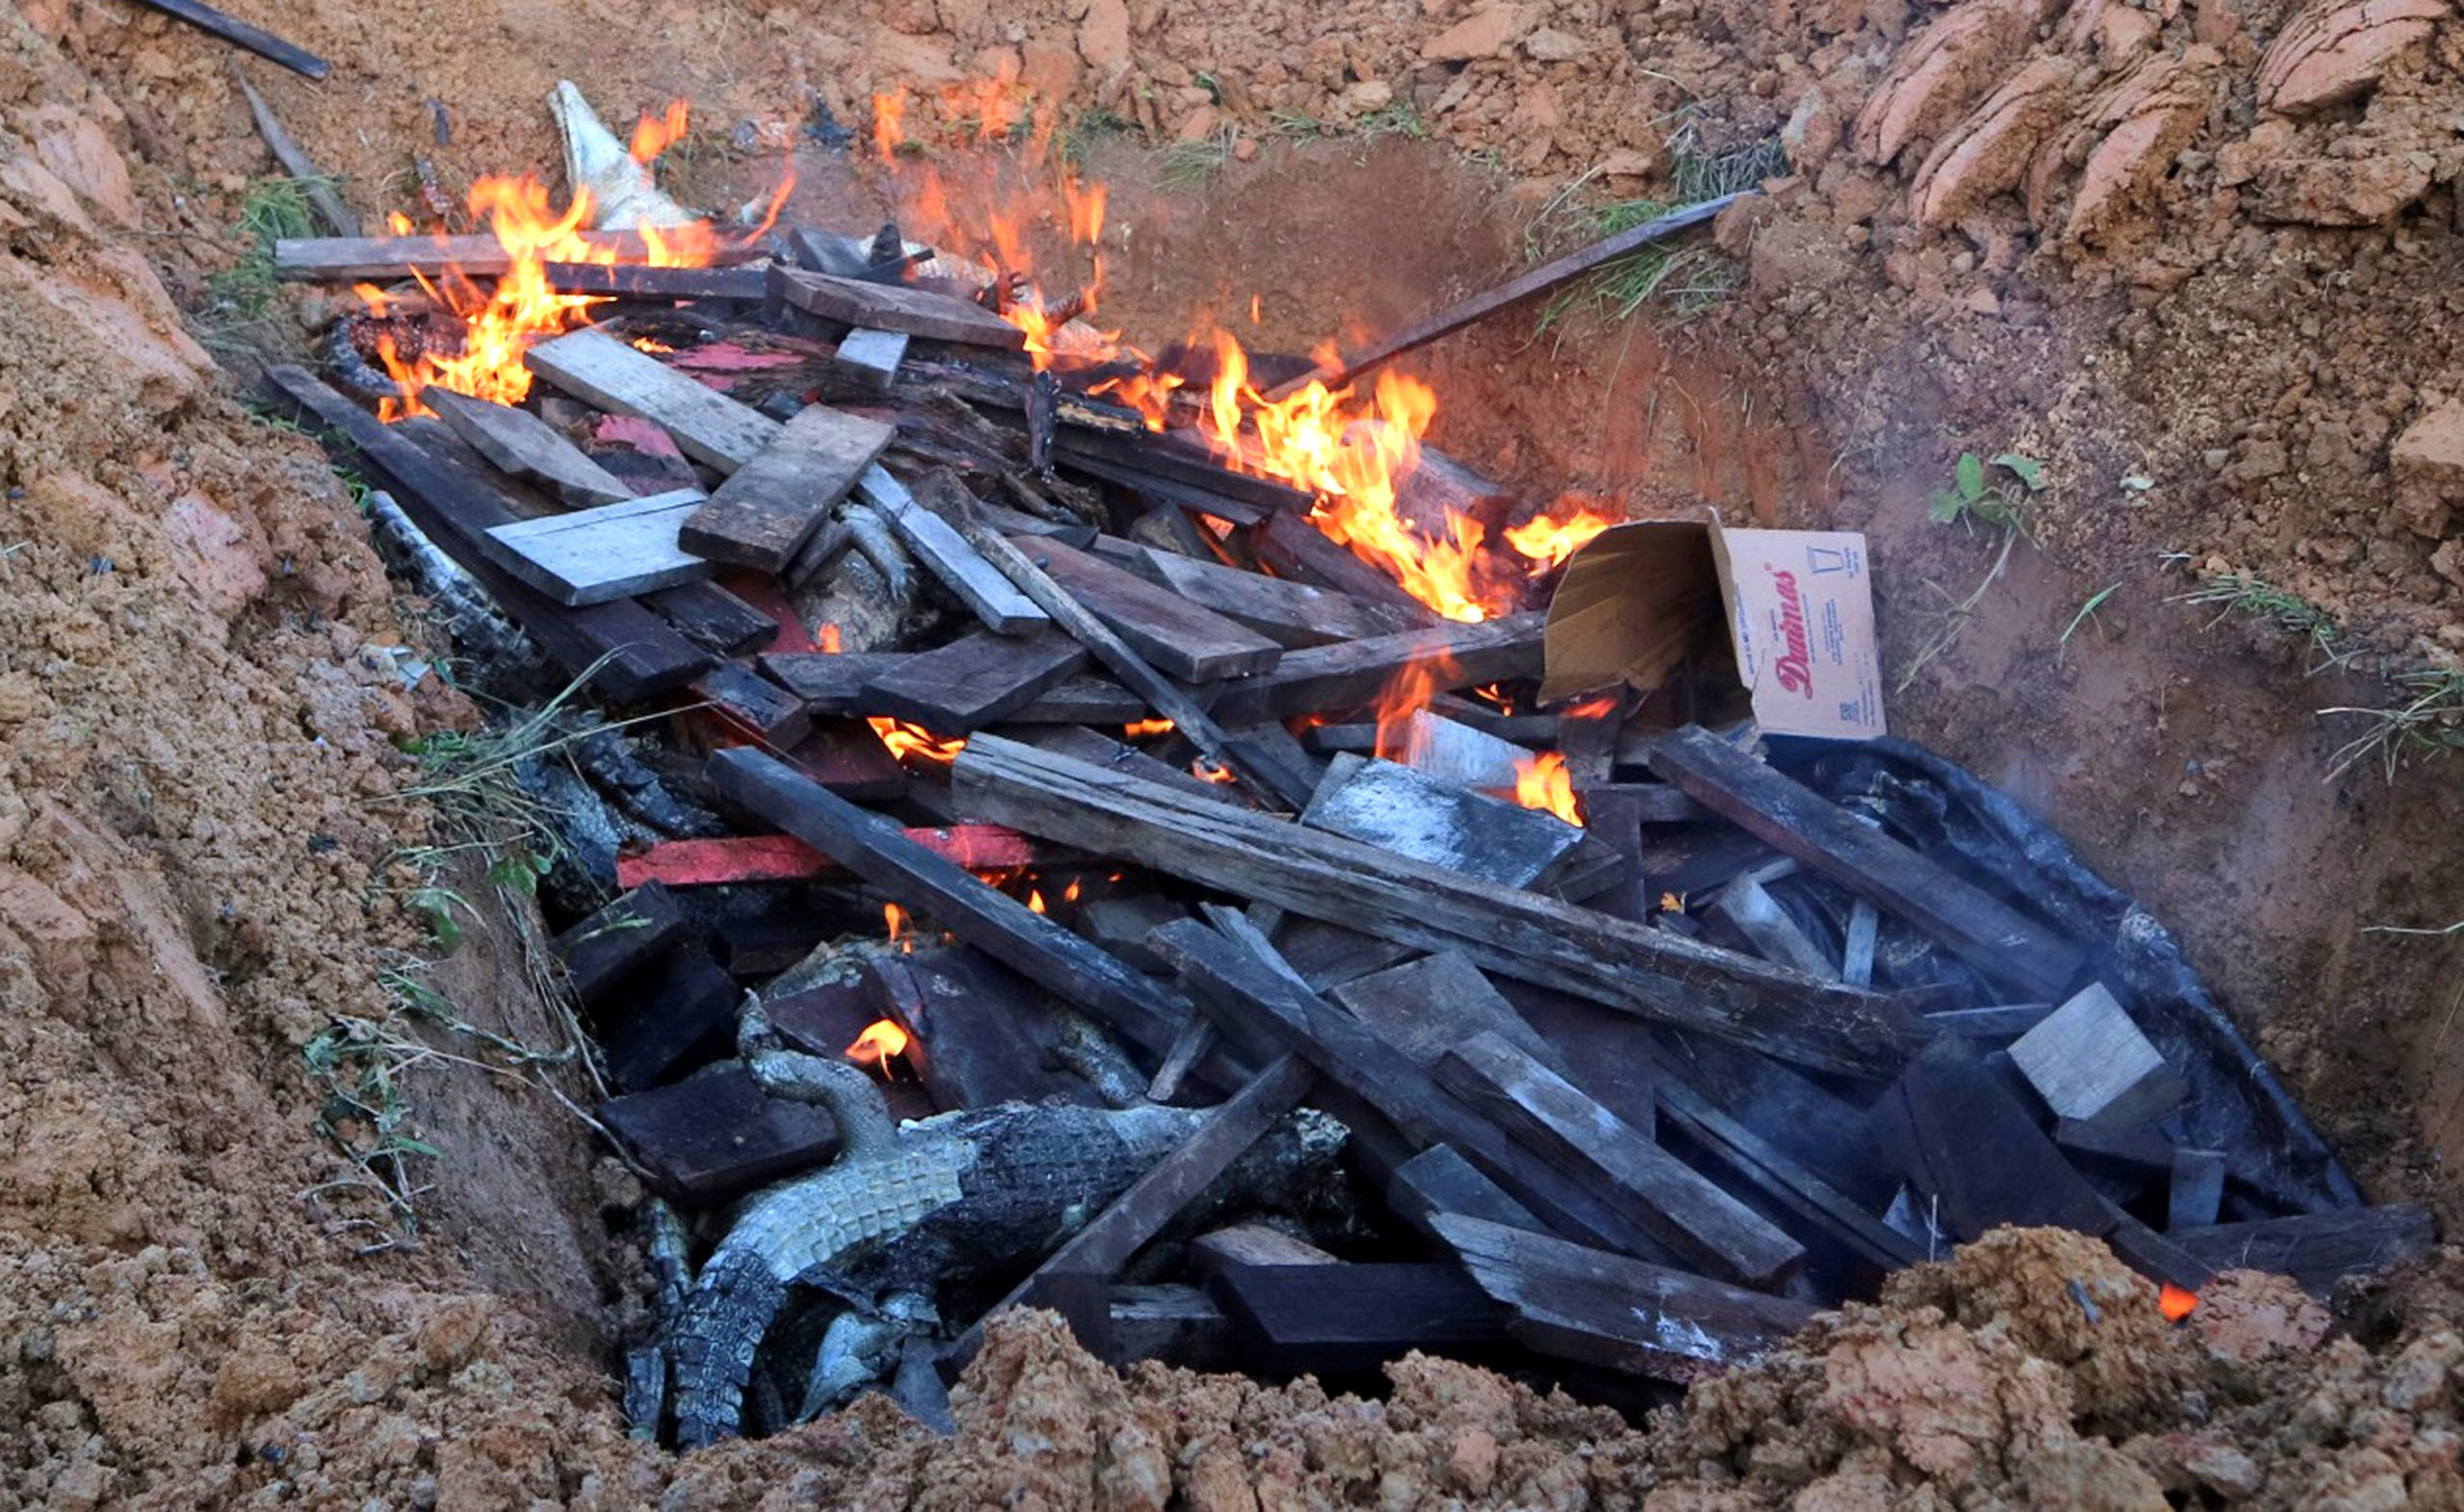 Some of the hundreds of crocodiles, killed by angry locals after a man was killed in a crocodile attack, are burned by government authorities in Sorong regency, West Papua, Indonesia, July 16, 2018. (Reuters)